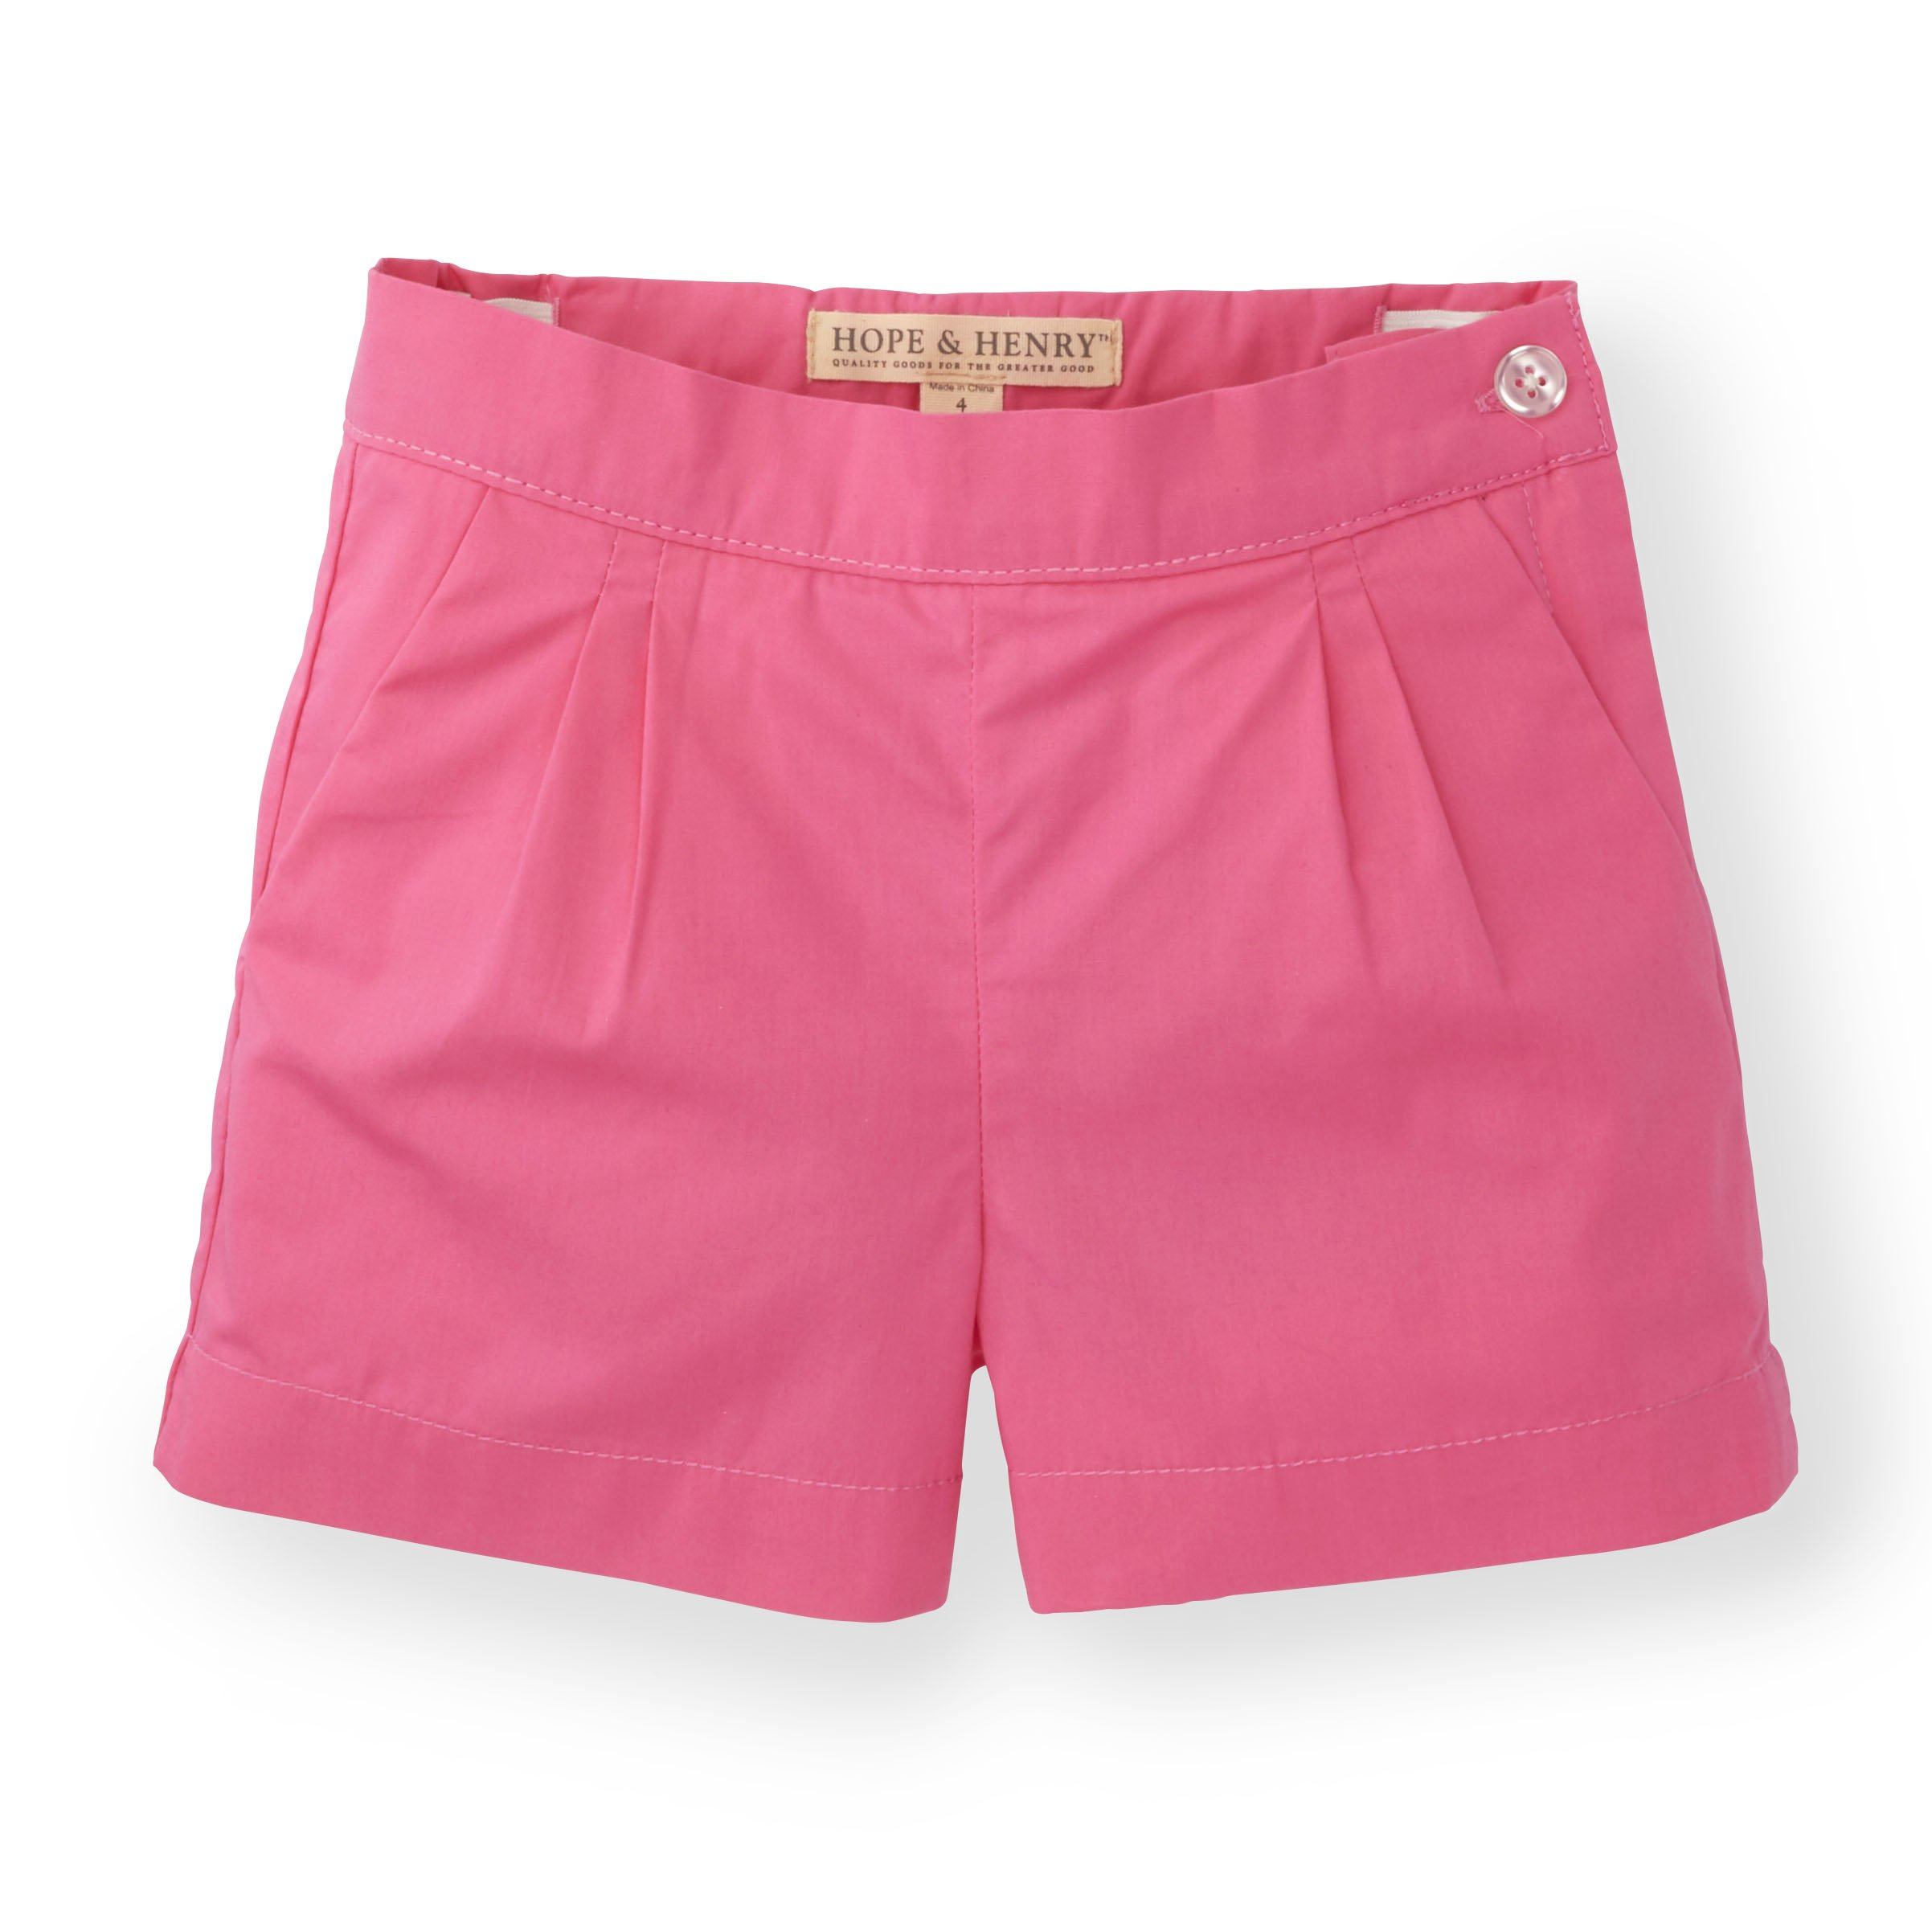 Hope & Henry Girls' Pink Pleat Short Made with Organic Cotton